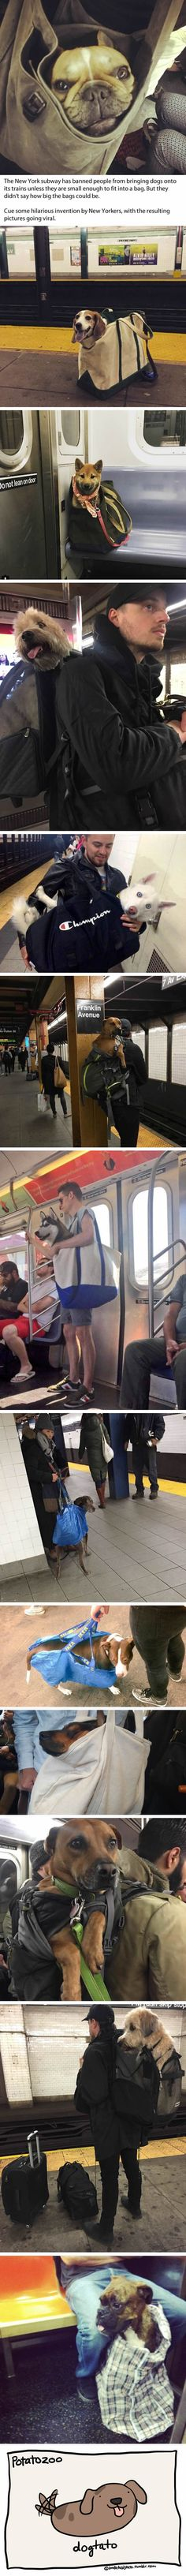 NYC Subway Banned Dogs Unless They Fit In A Bag, So These Owners Got Creative